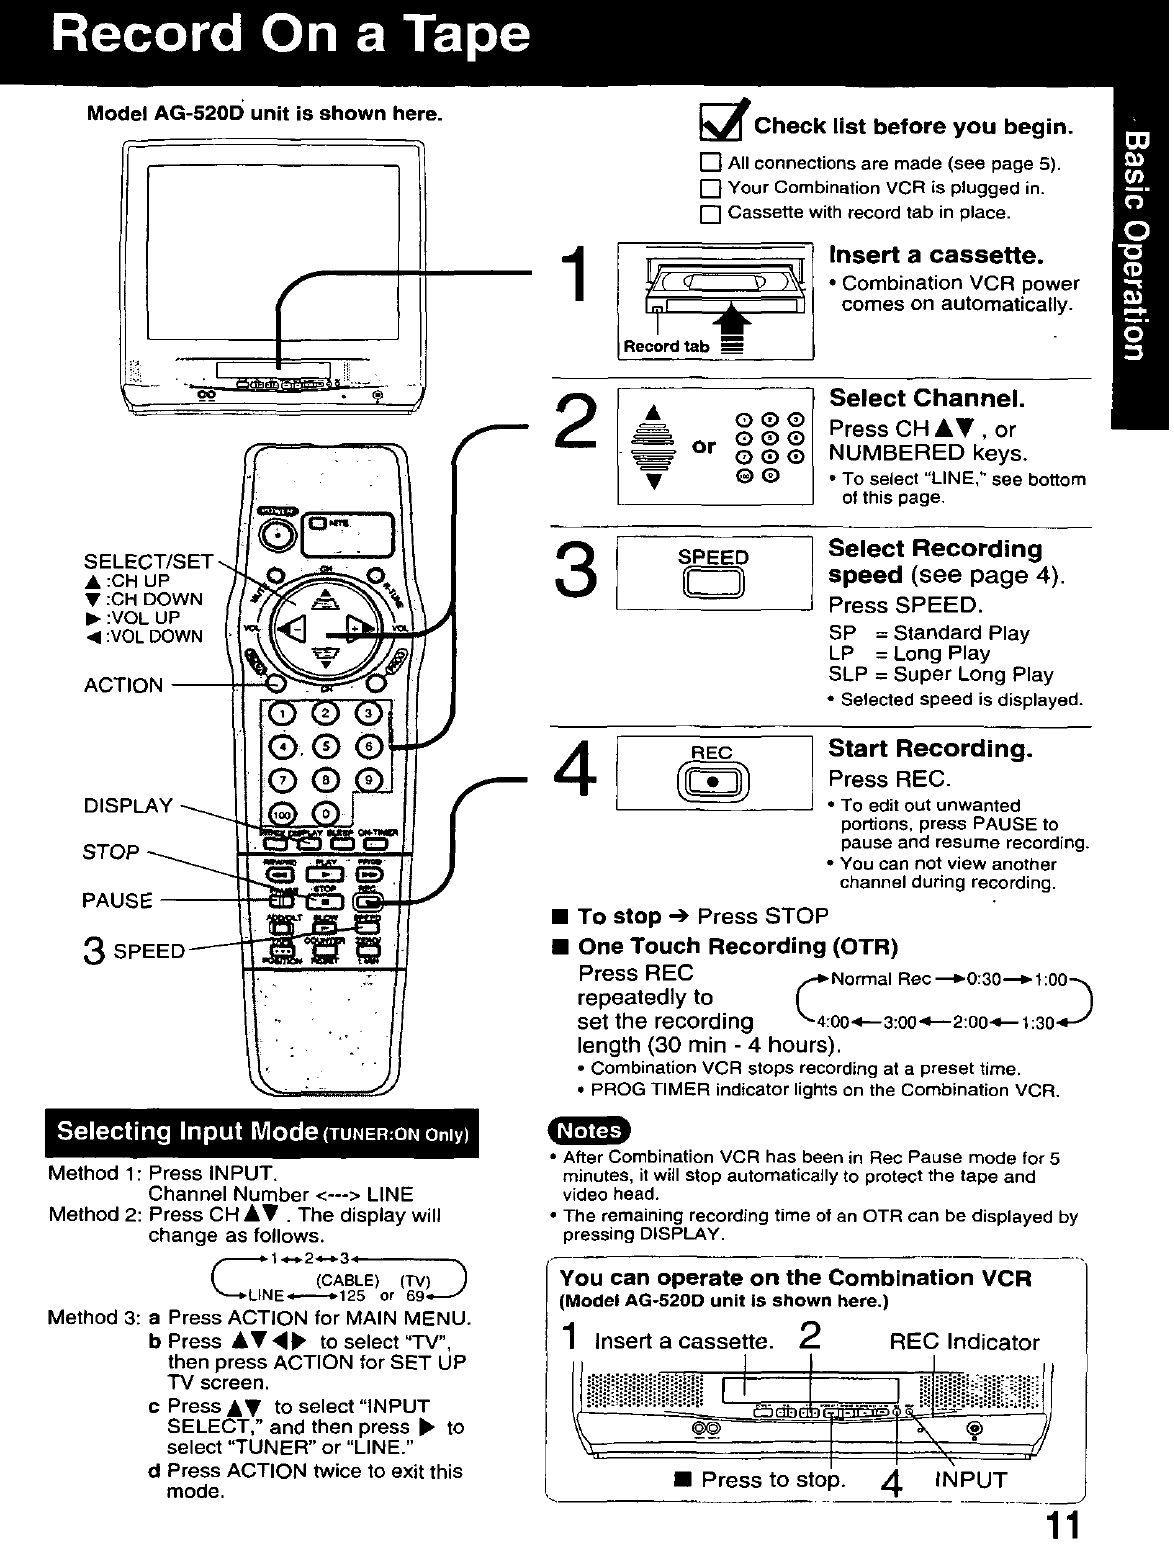 Page 11 of Panasonic TV VCR Combo AG-513D User Guide